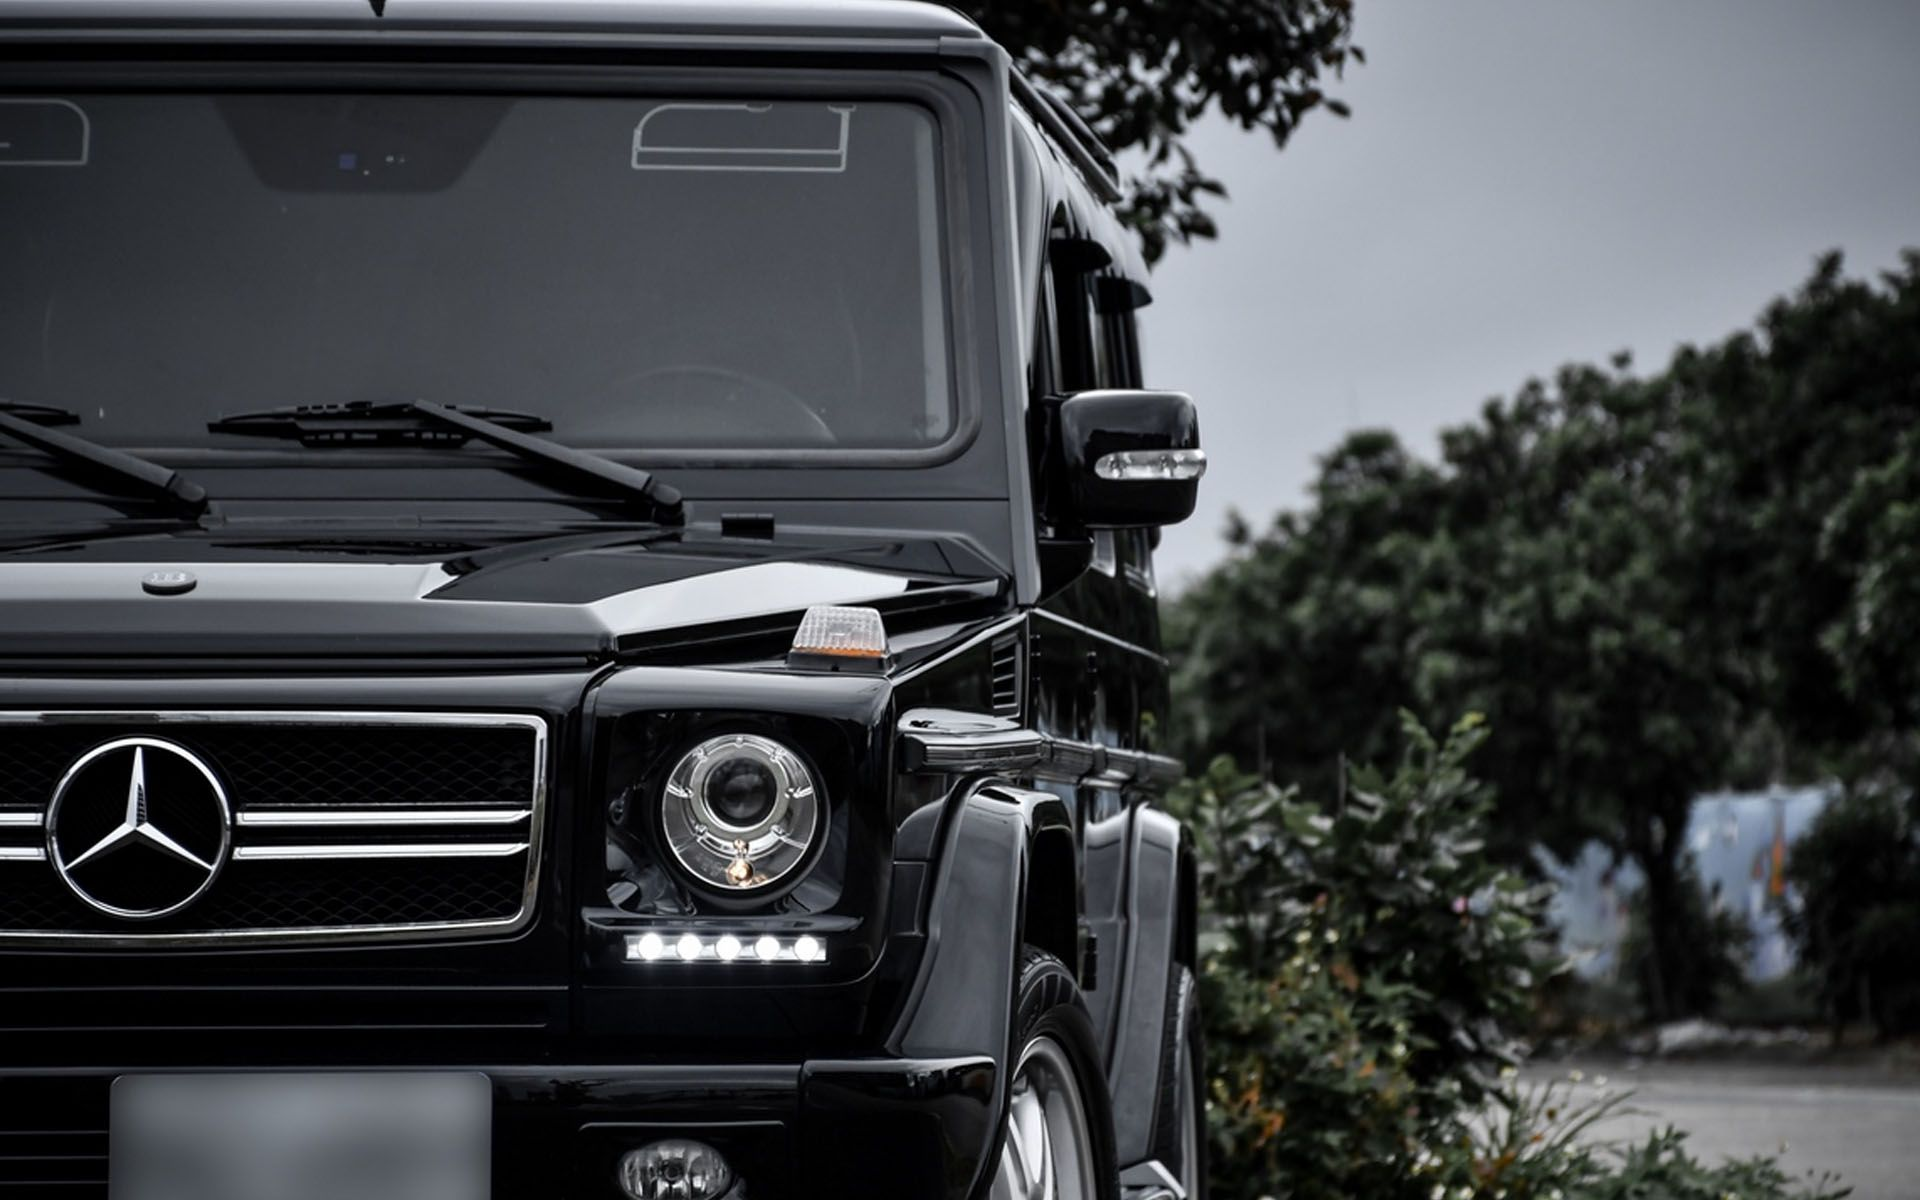 Mercedes Benz G500 Hd Wallpaper With Images Mercedes Benz G500